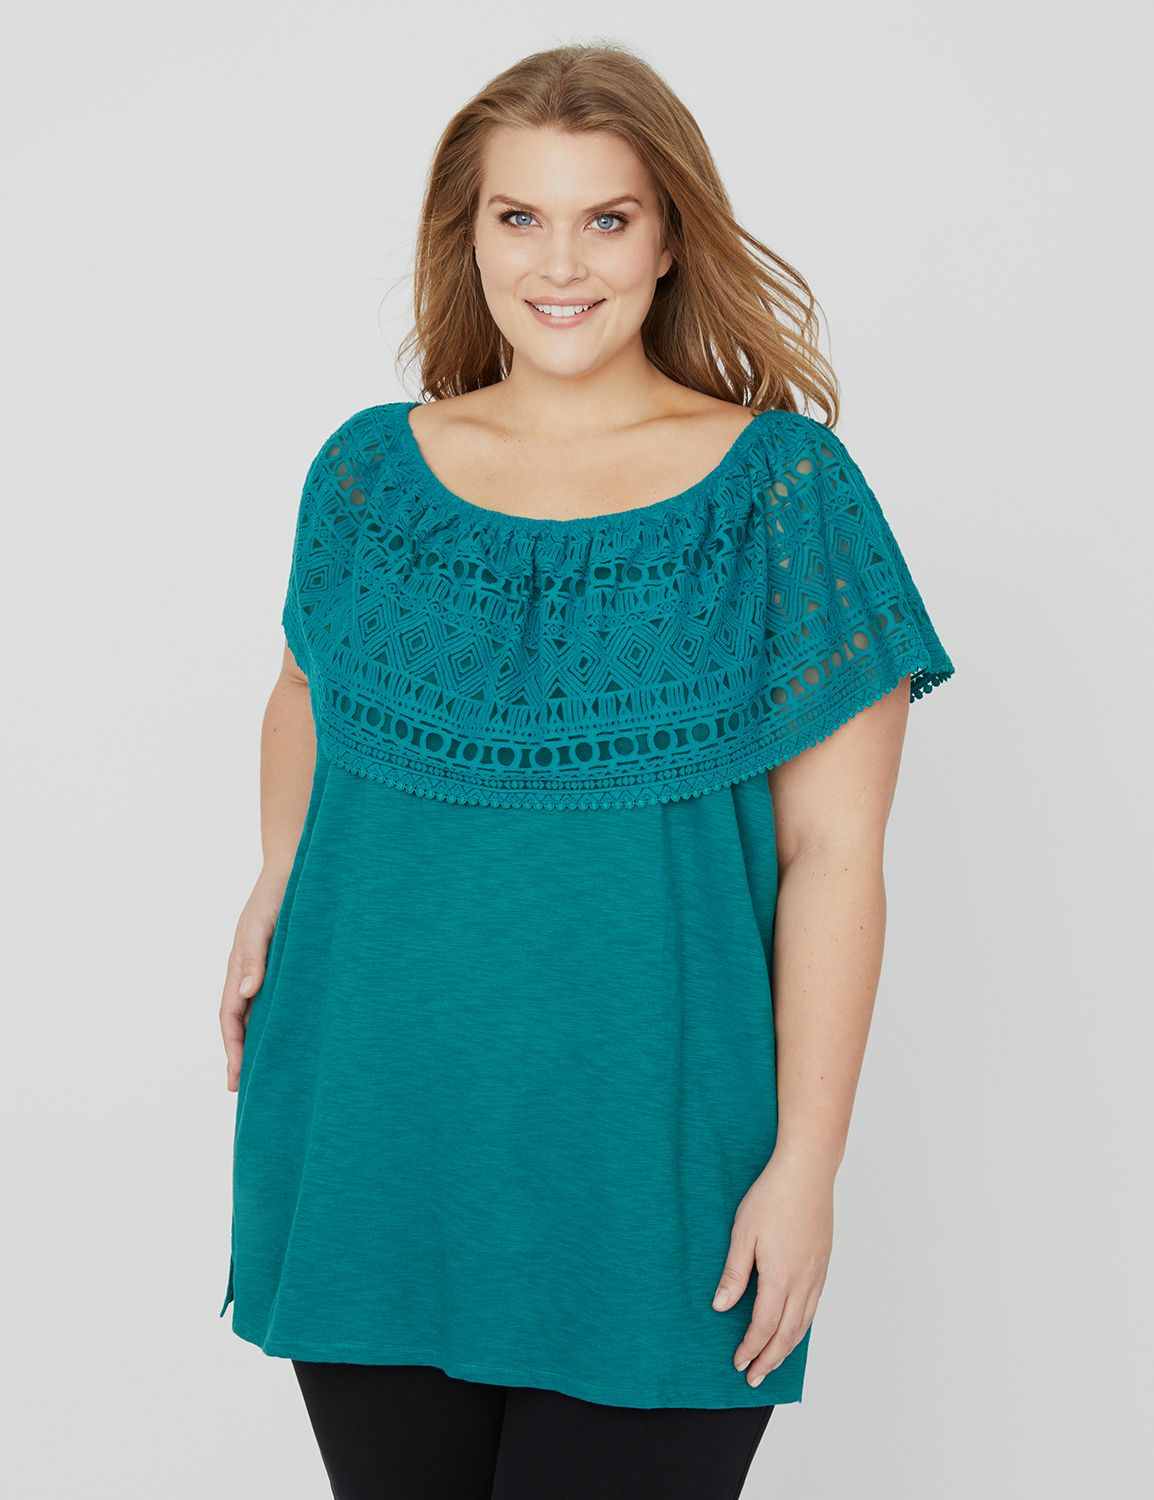 Shaded Cove Off-the-Shoulder Top 1088202 BURNOUT FLOUNCE OFF SHOULDE MP-300101843